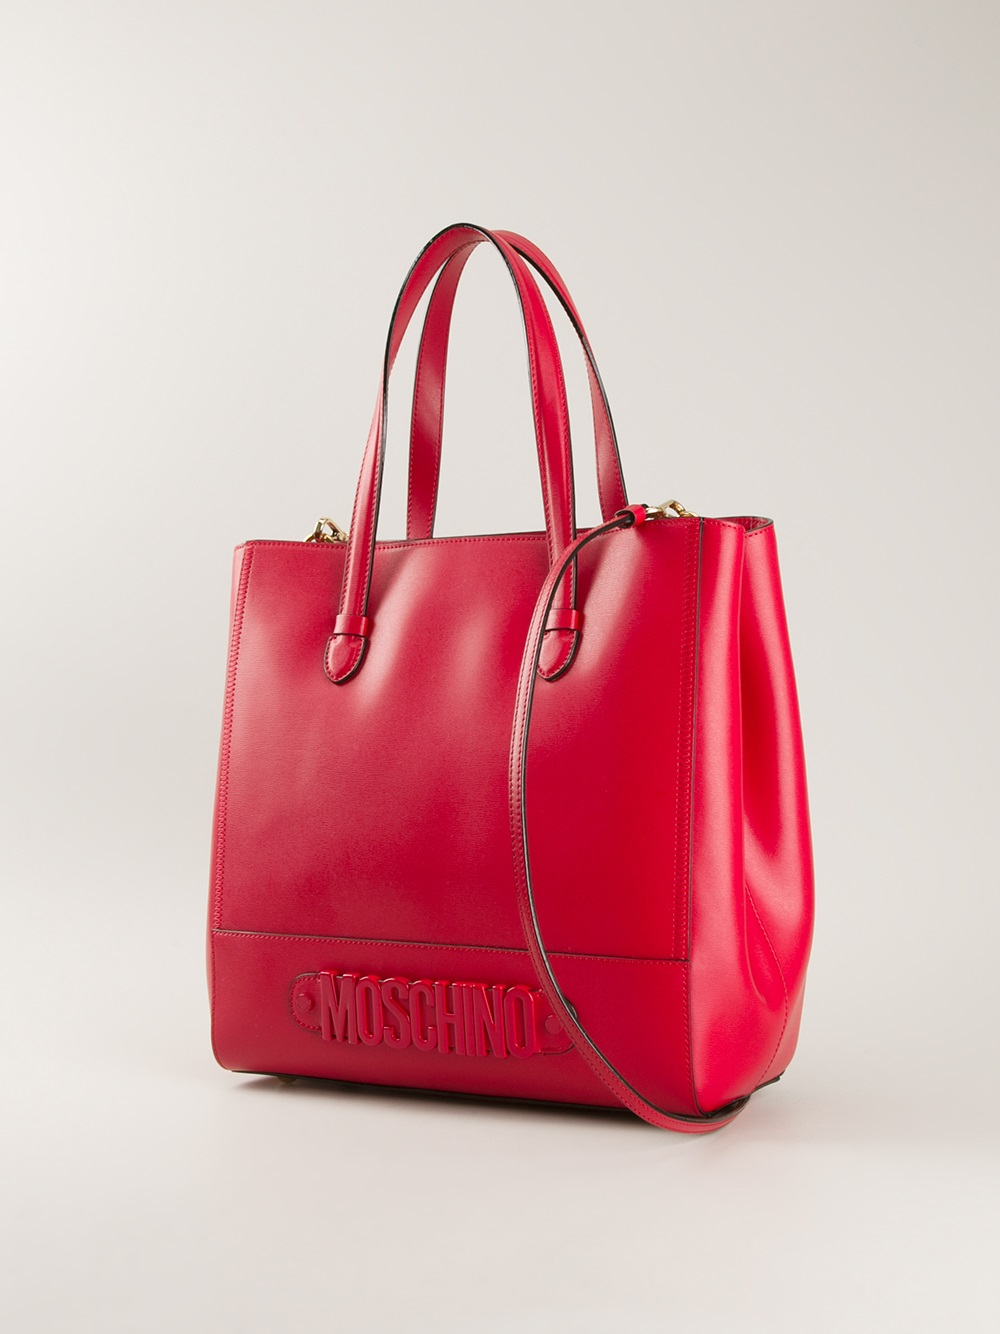 Lyst Moschino Rossella Shopper Tote In Red